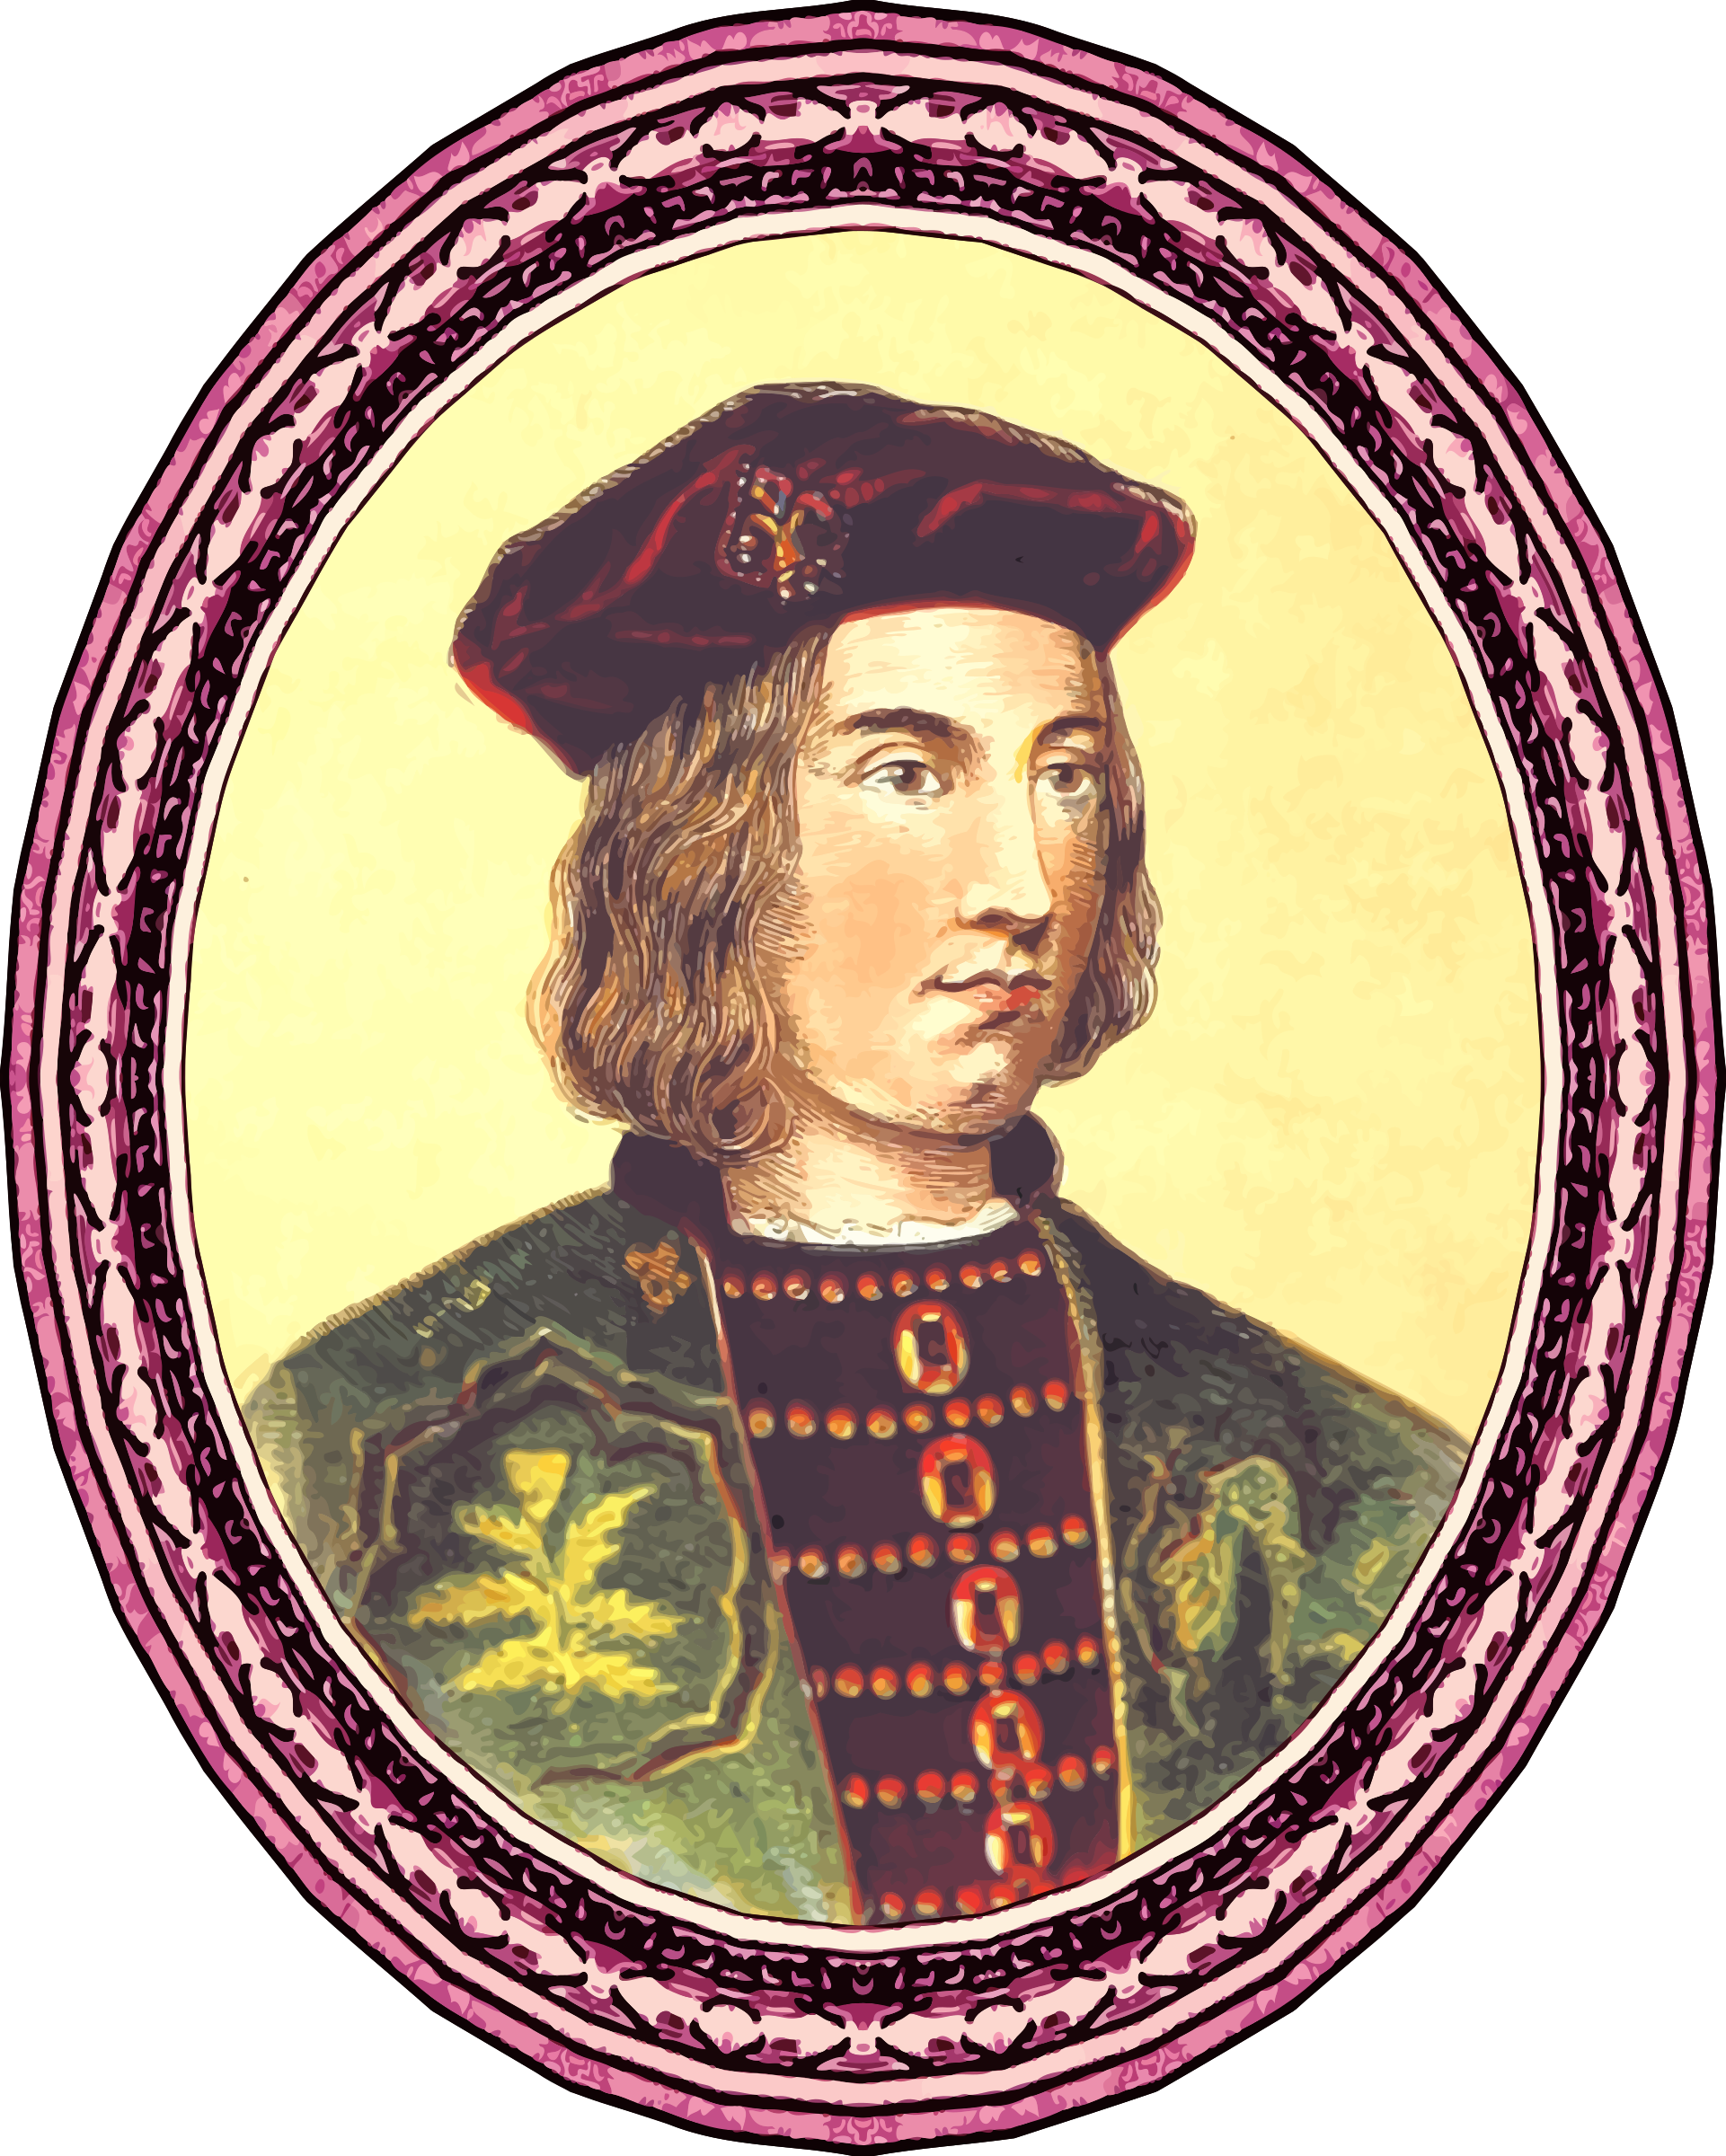 King Edward IV (framed) by Firkin